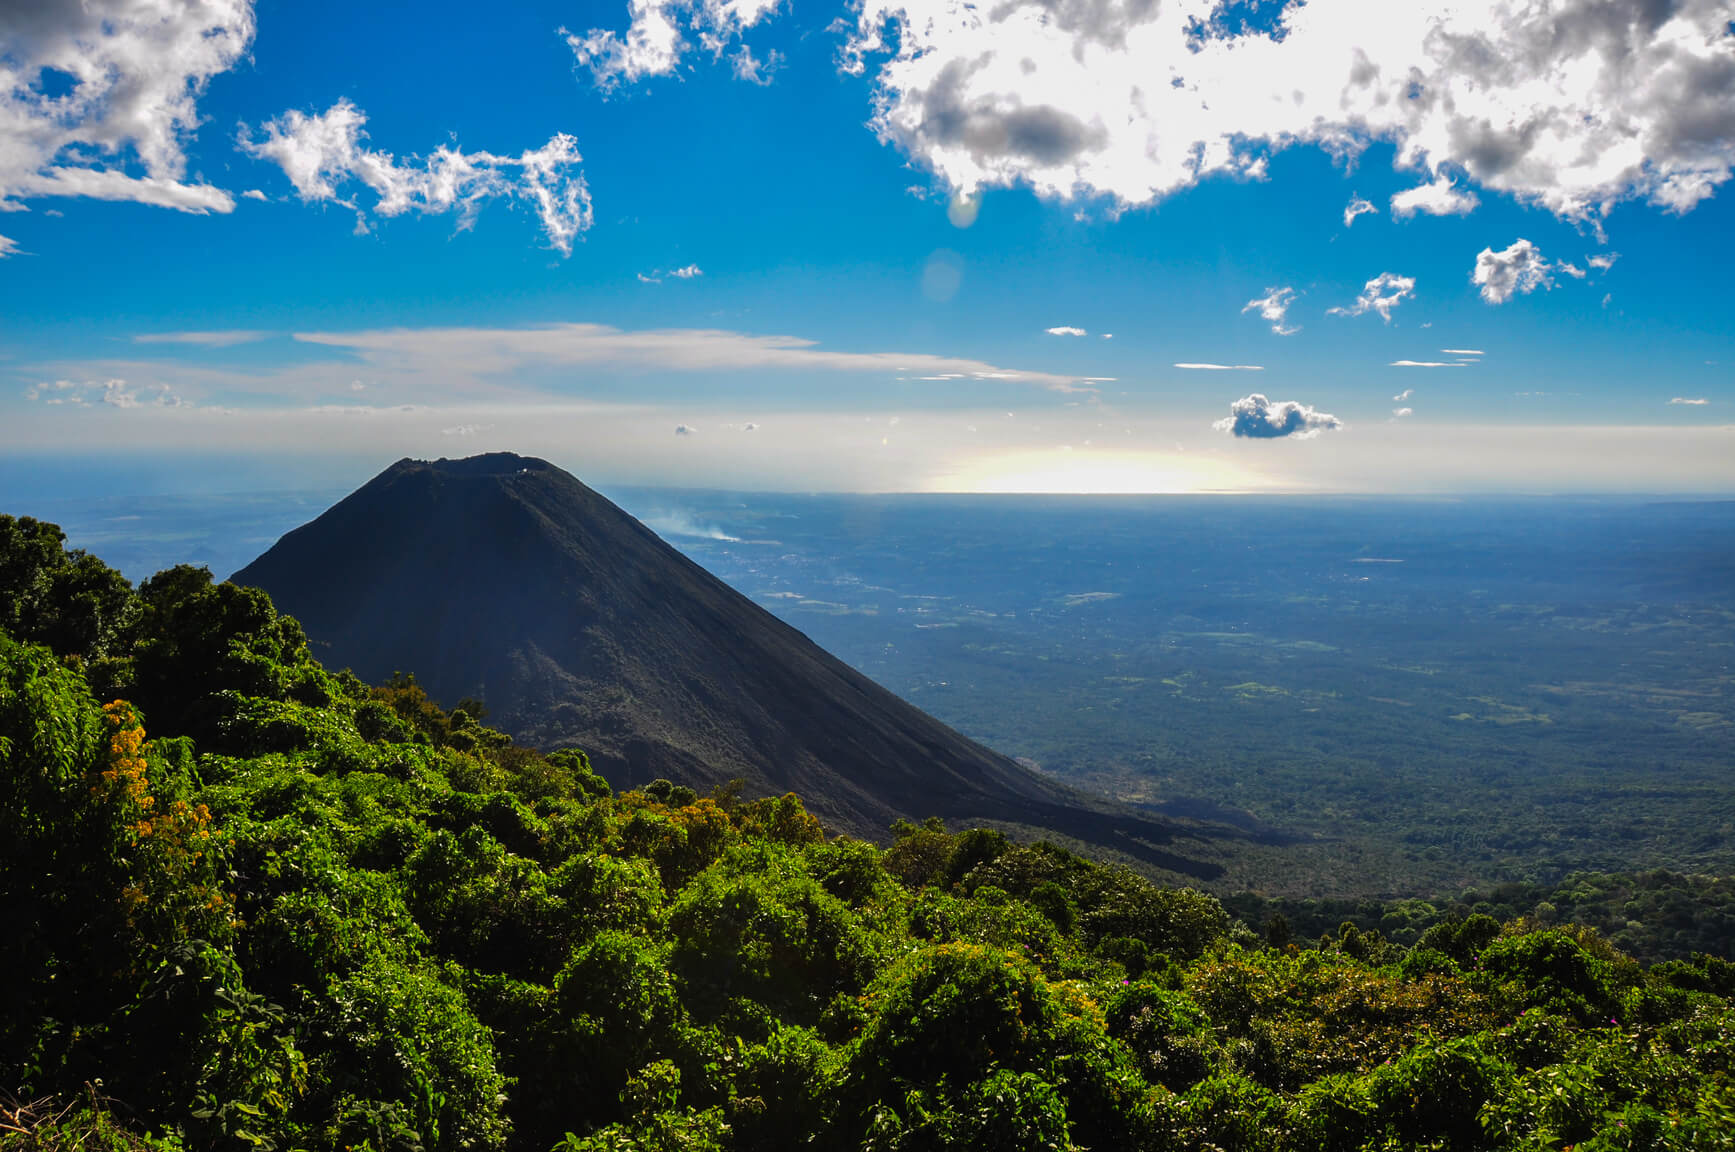 Miami to El Salvador for only $175 roundtrip